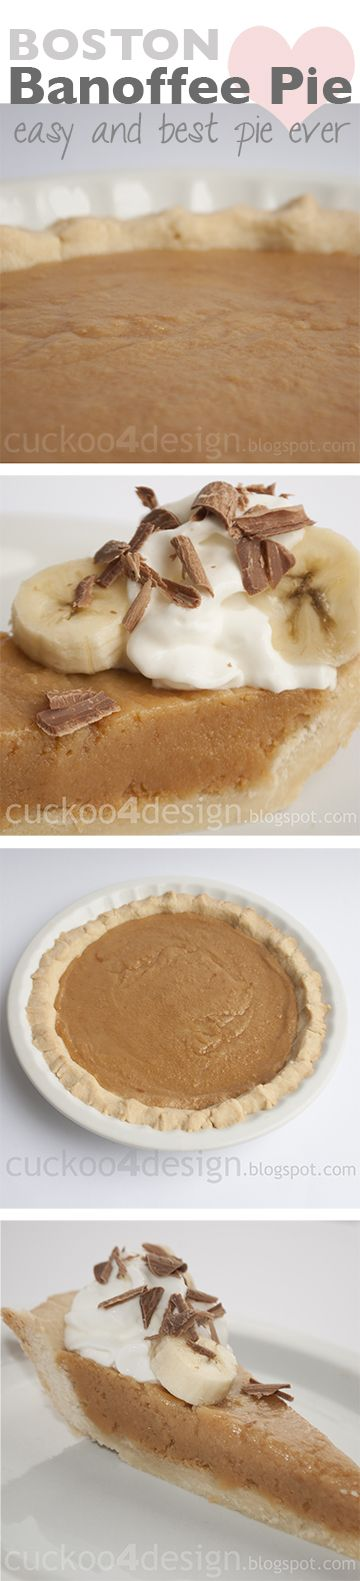 This pie tastes like gooey caramel, so good -  Boston Banoffee Pie - Cuckoo4Design